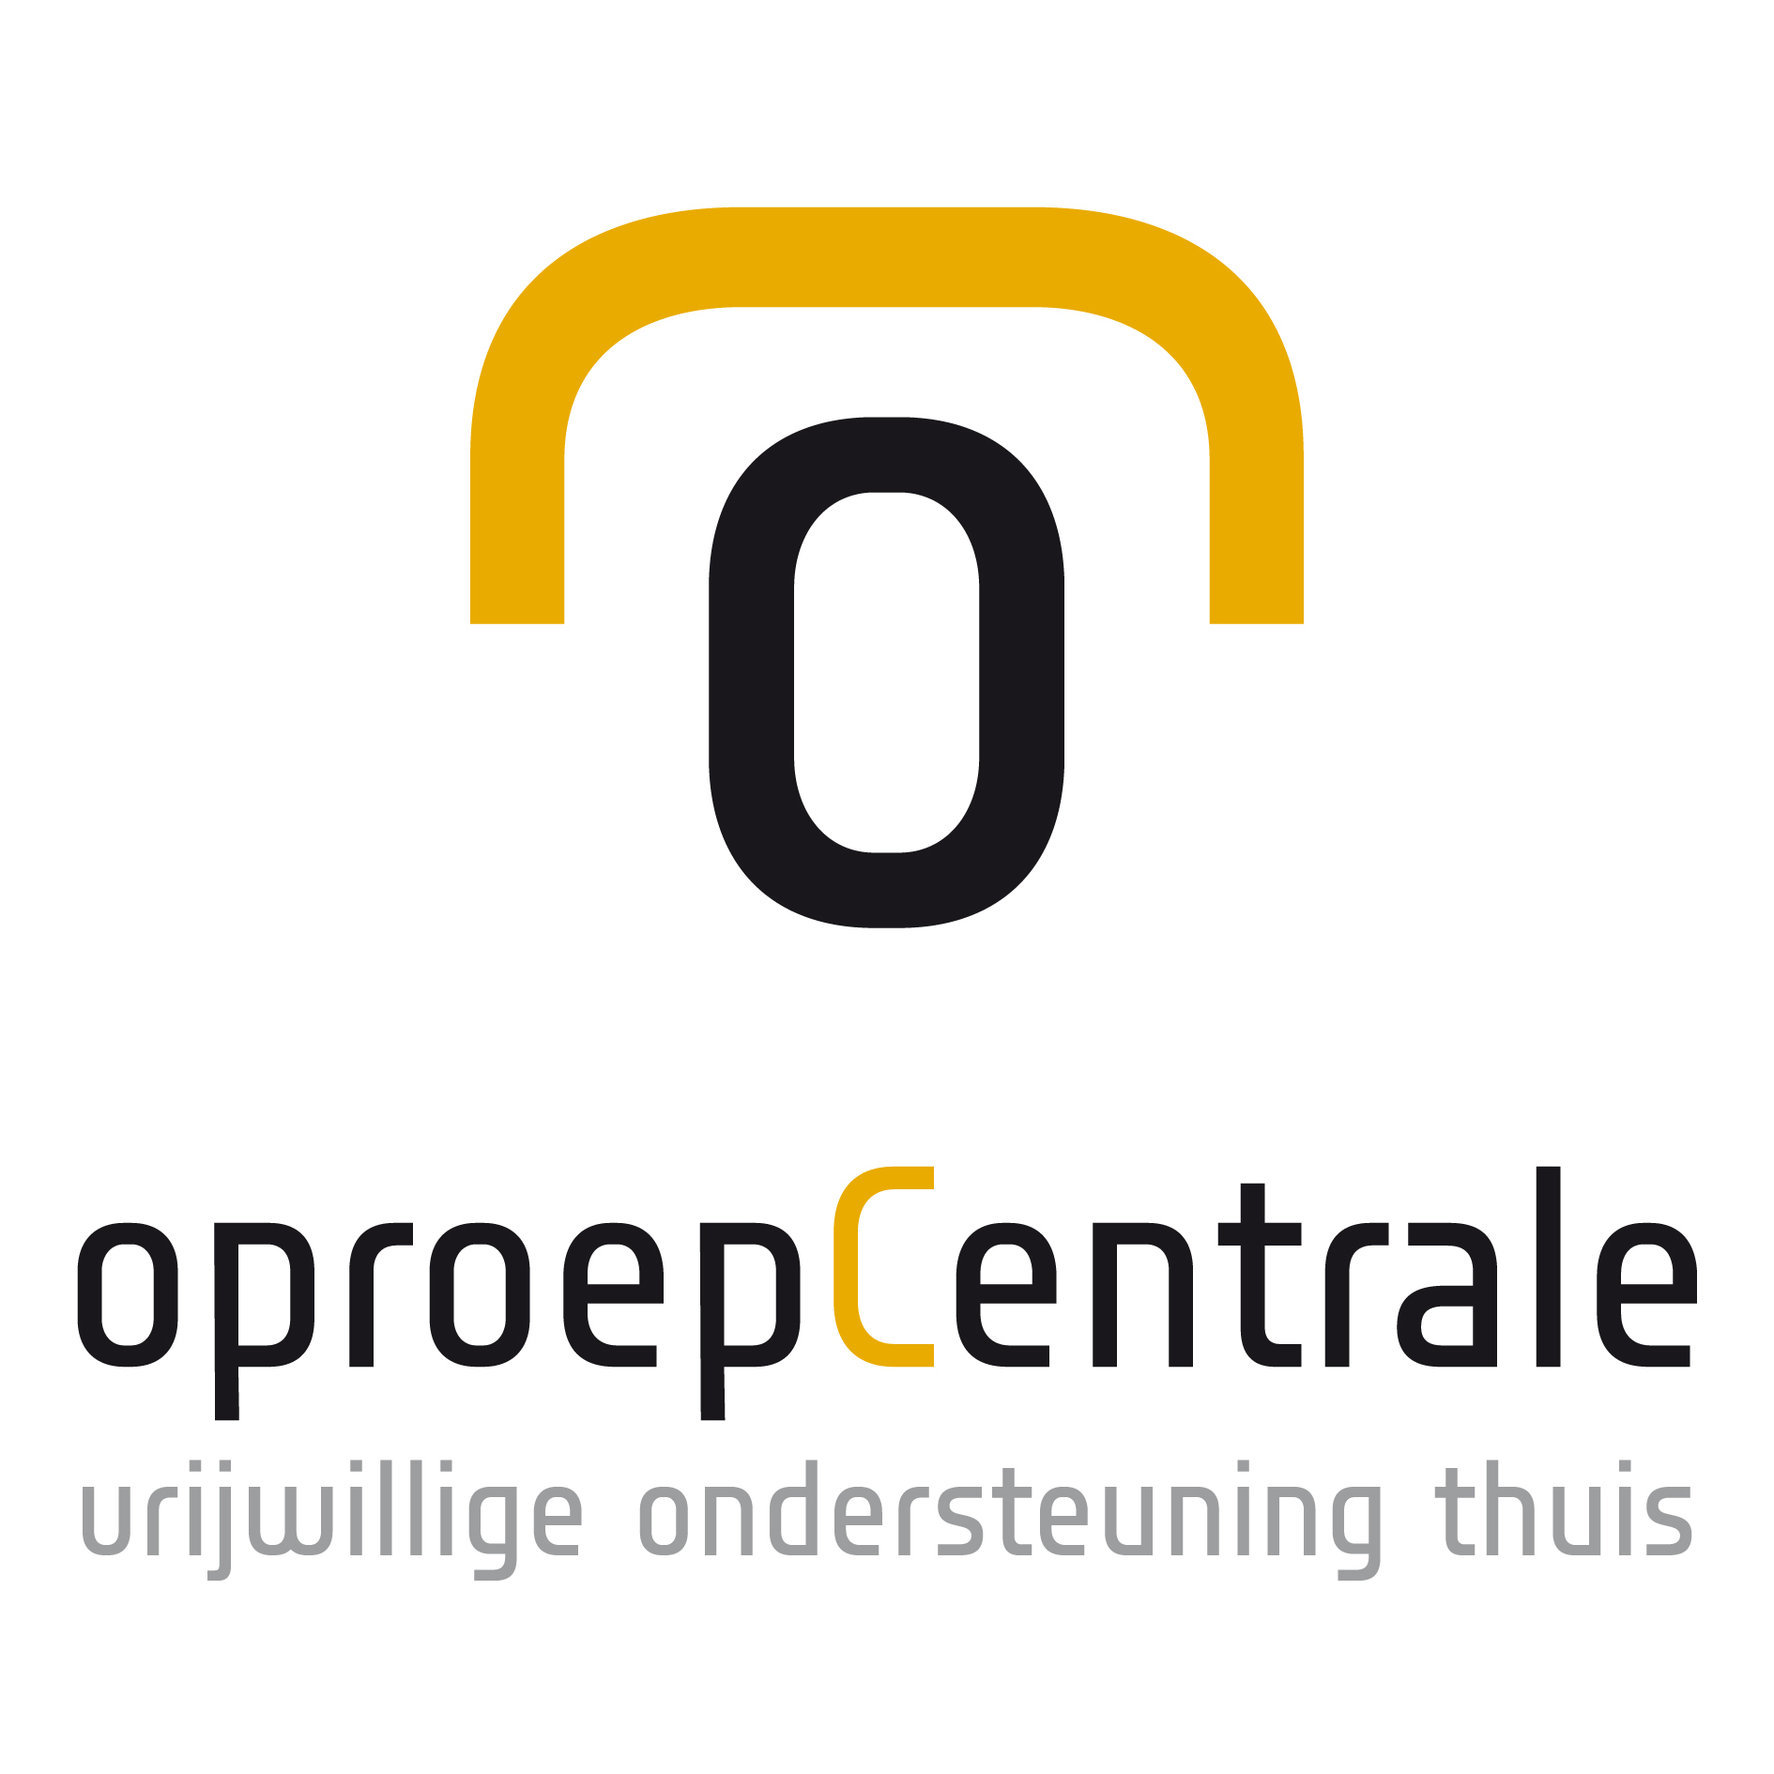 Oproepcentrale